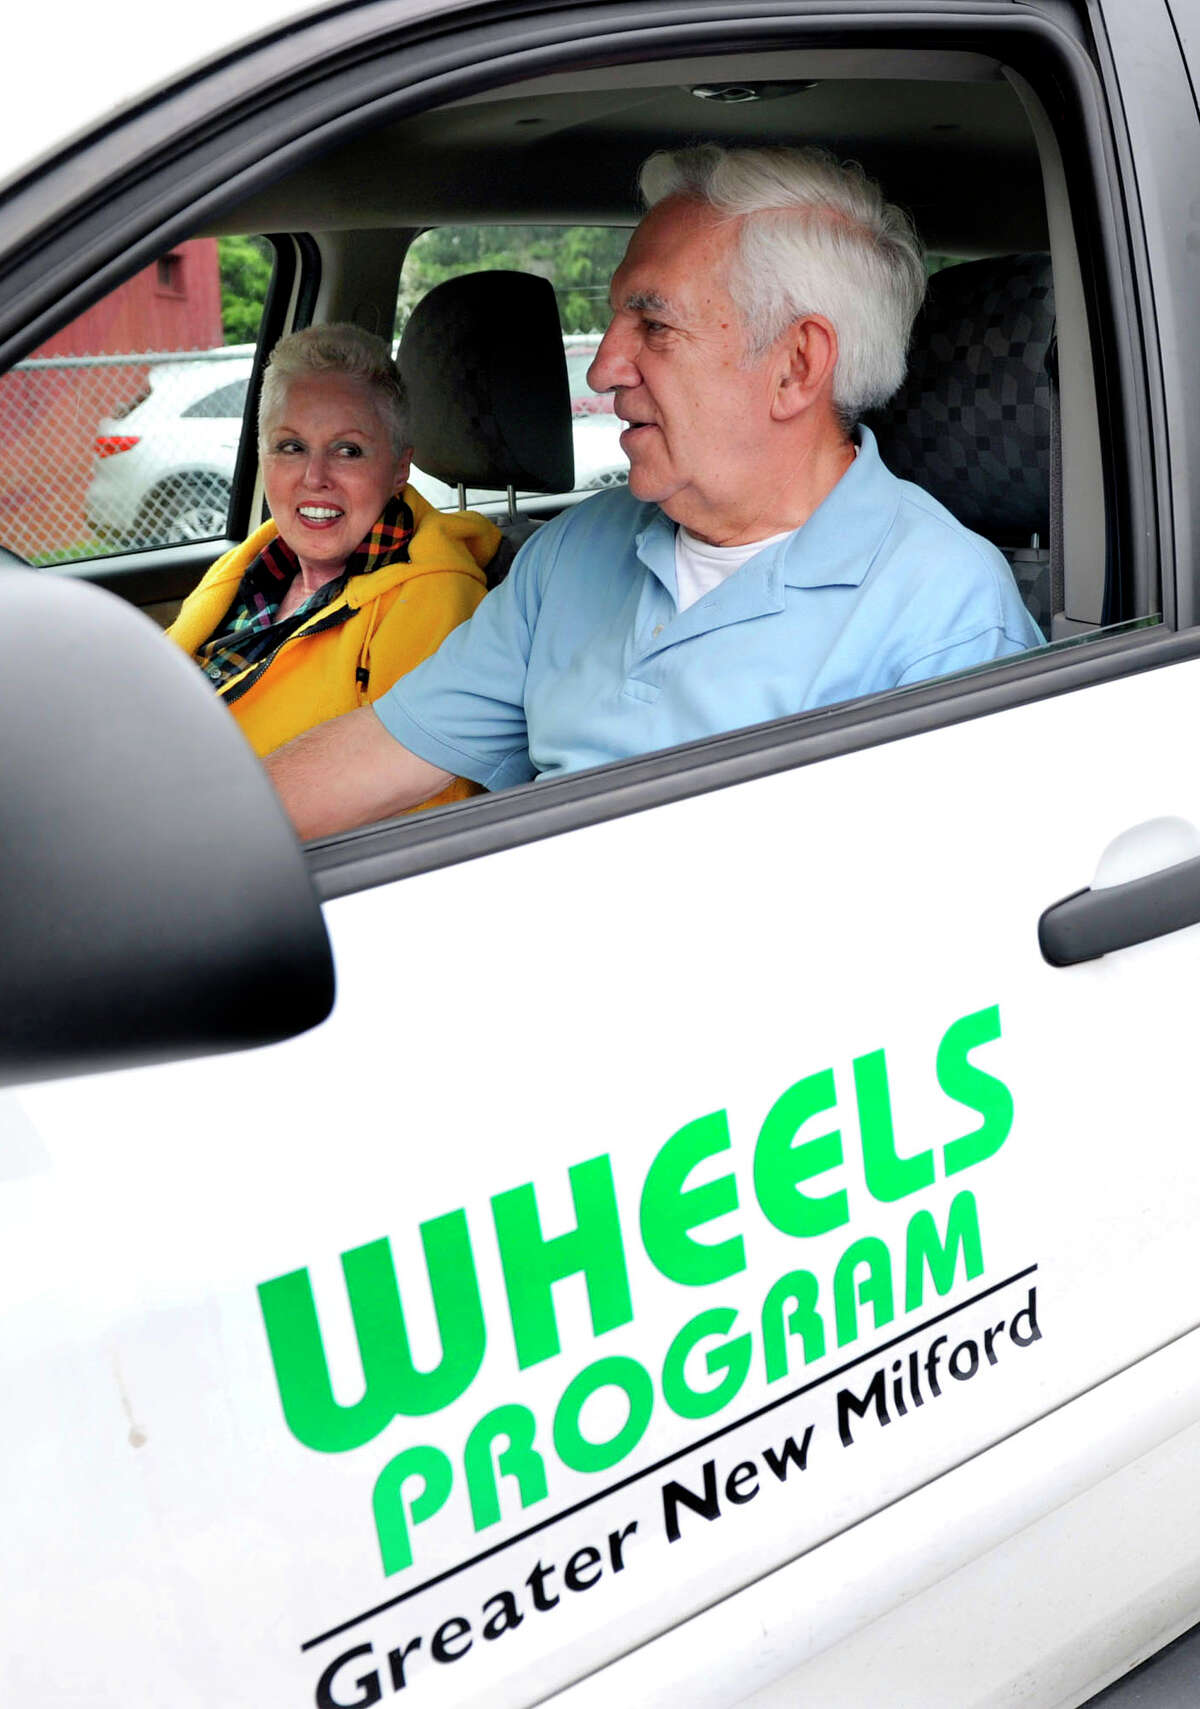 Maxine Hayes of New Milford is provided with a ride by volunteer Roland Miller on Tuesday, June 12, 2012. The Wheels program provides seniors with rides to doctor appointments.